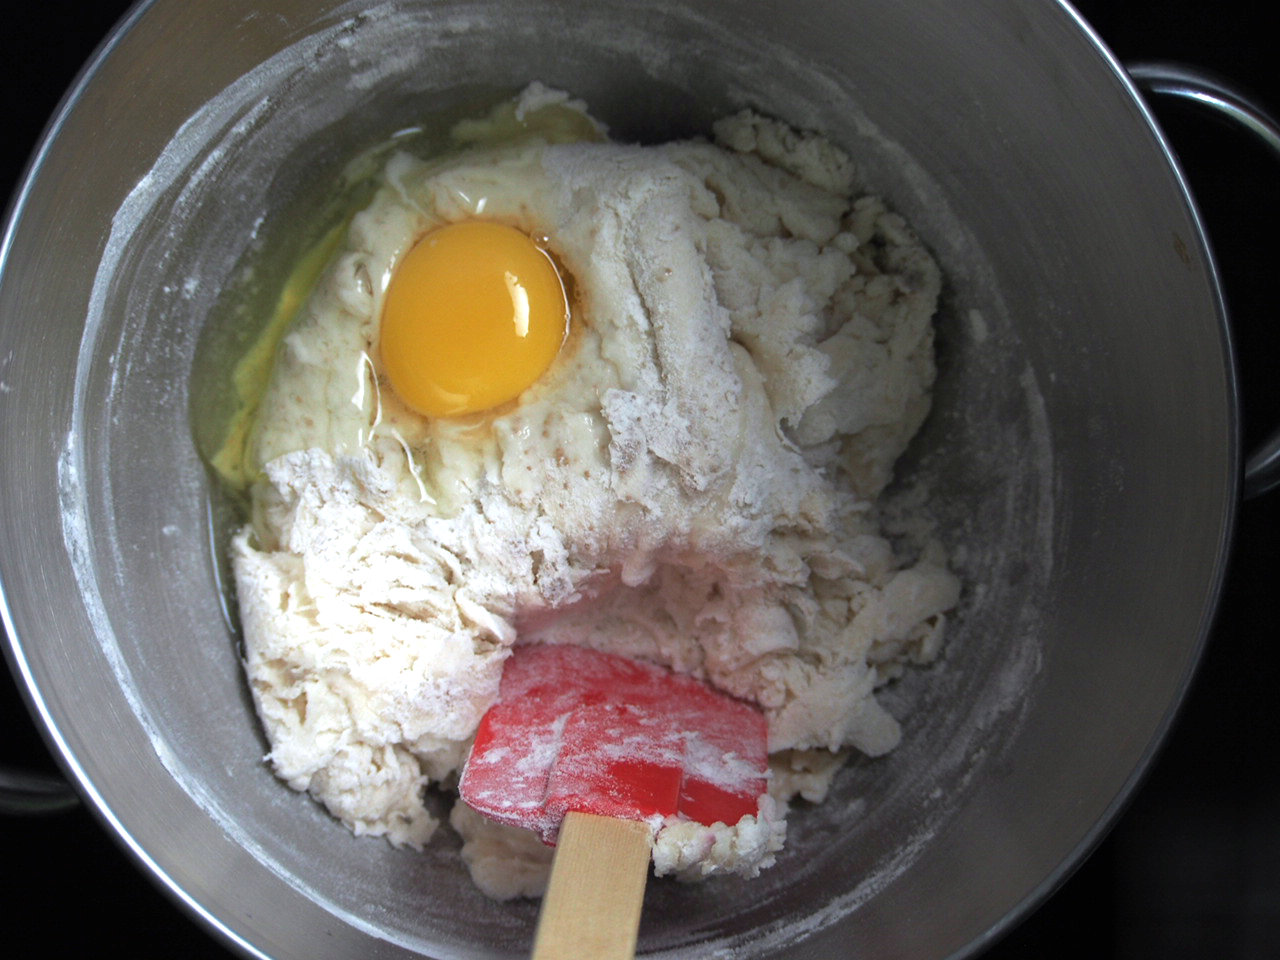 The egg is added to the dough.